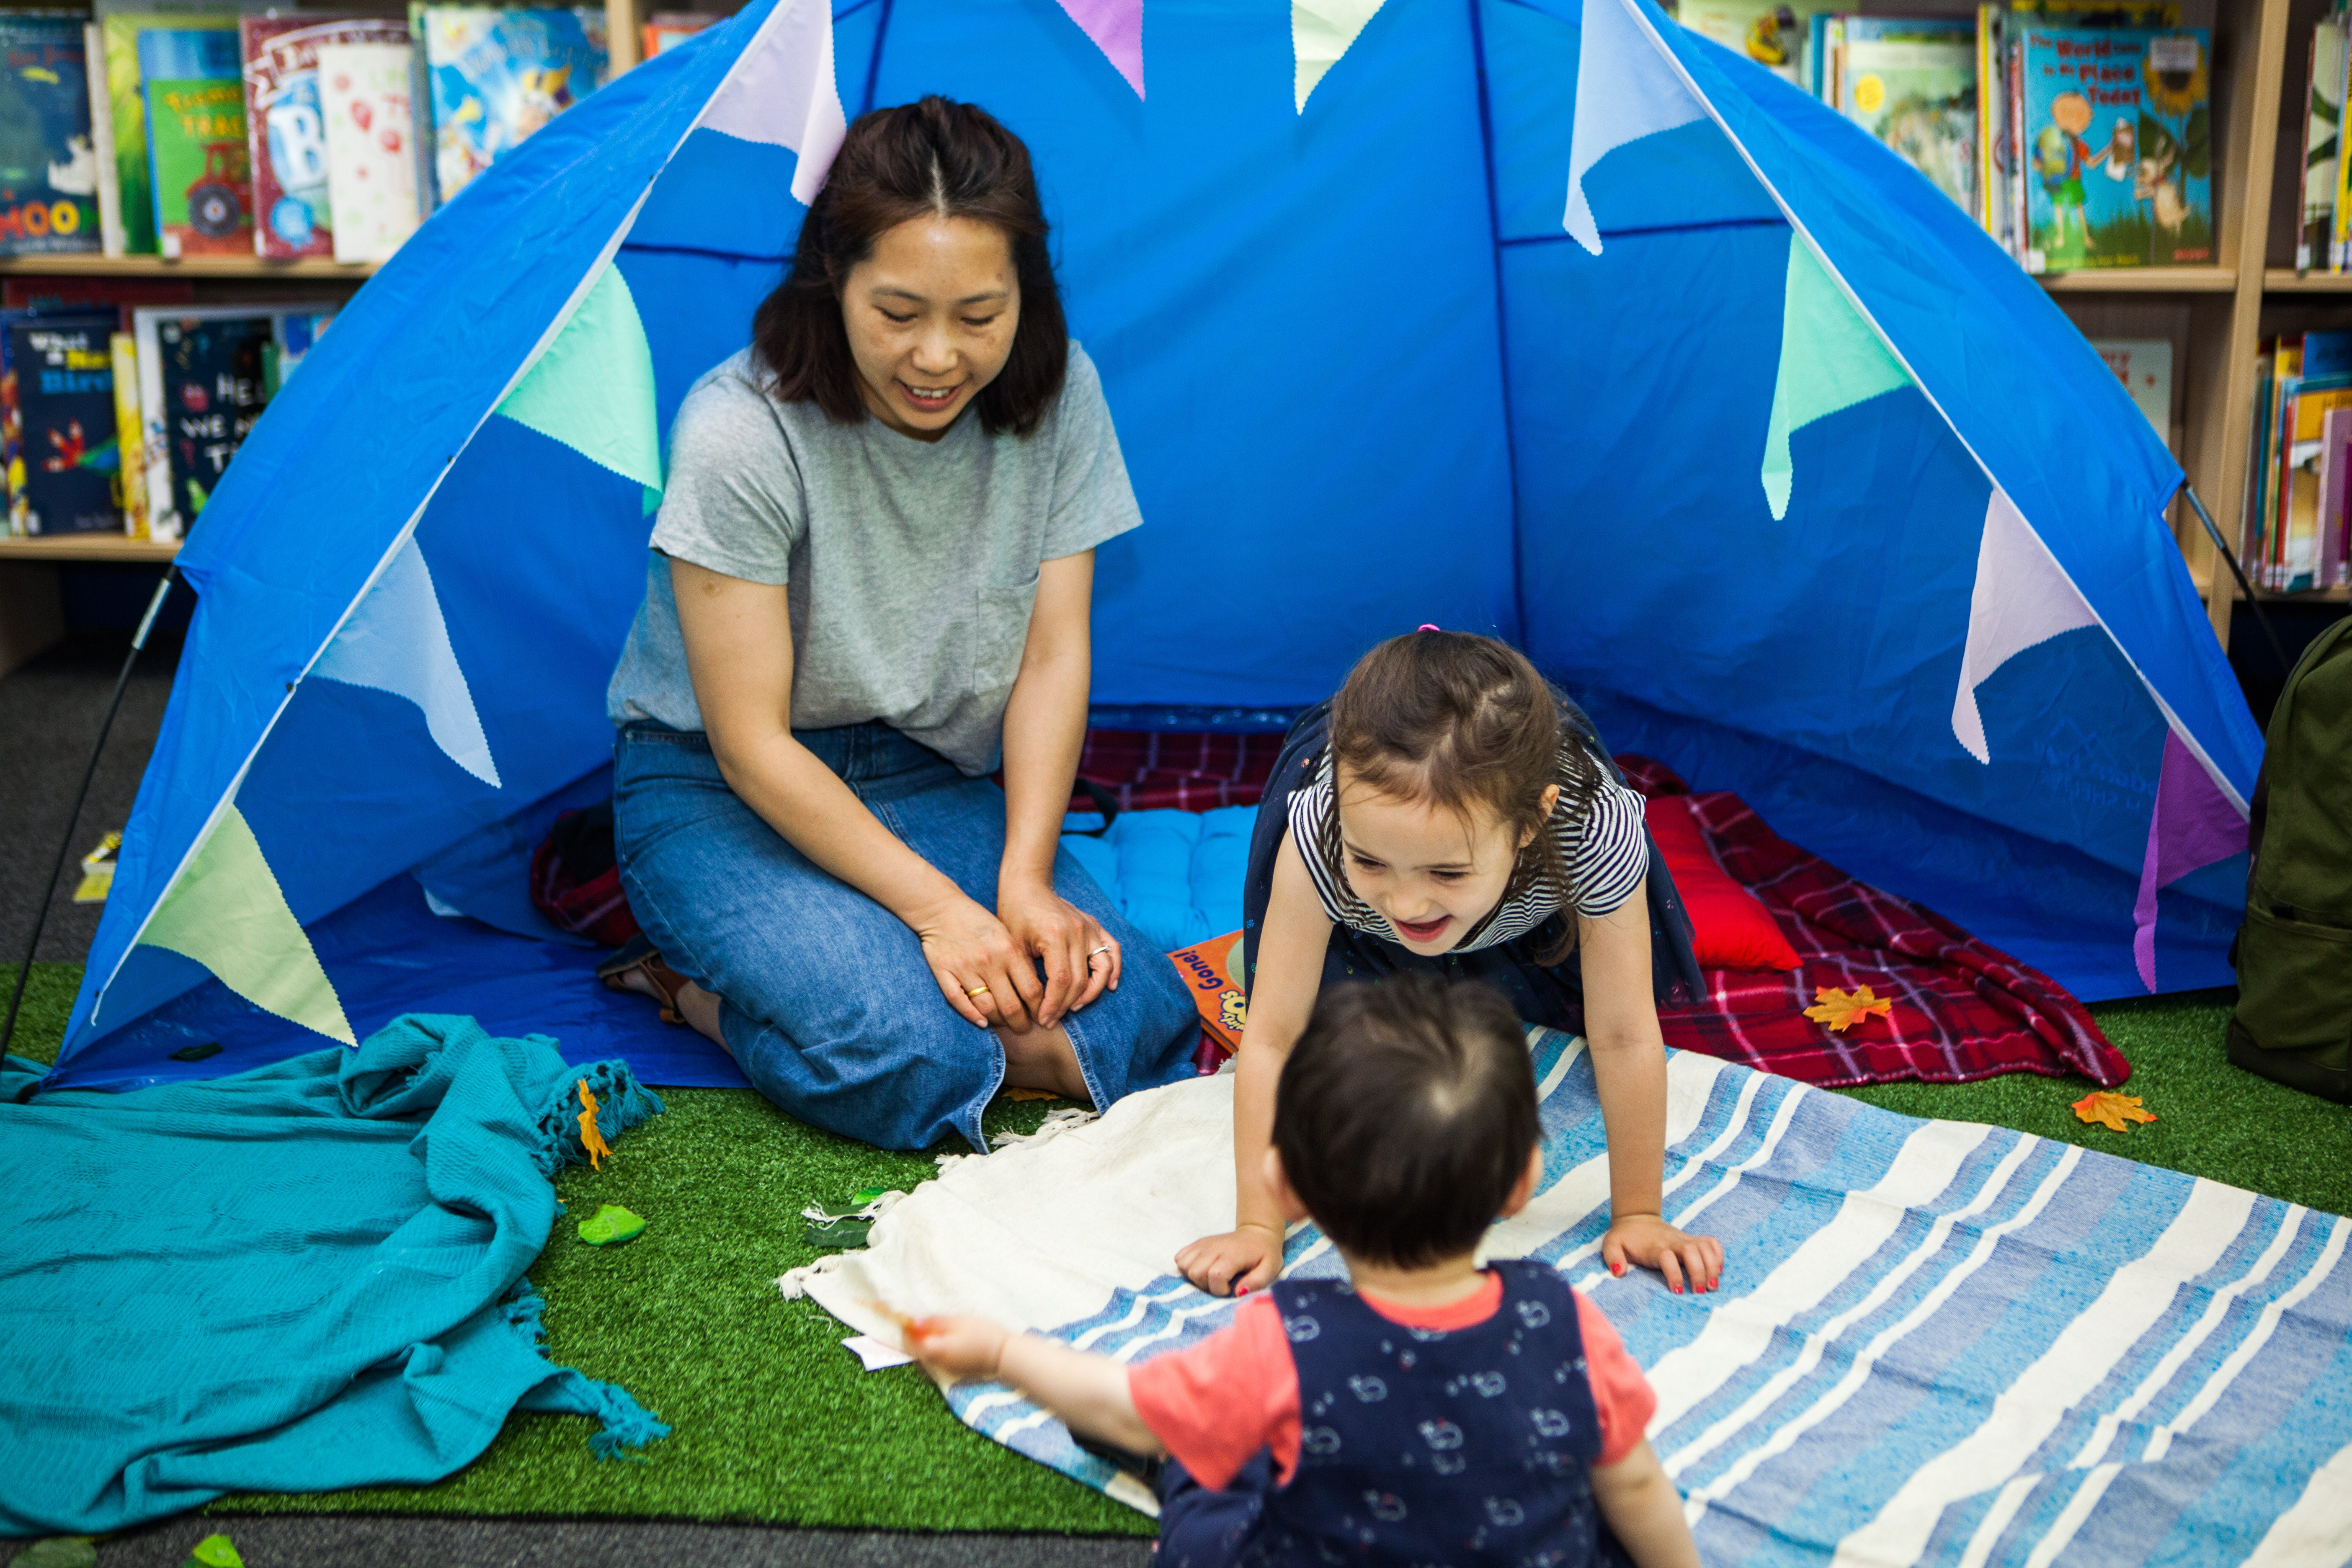 A woman sits in a blue tent, inside a library, watching two children play on a rug.